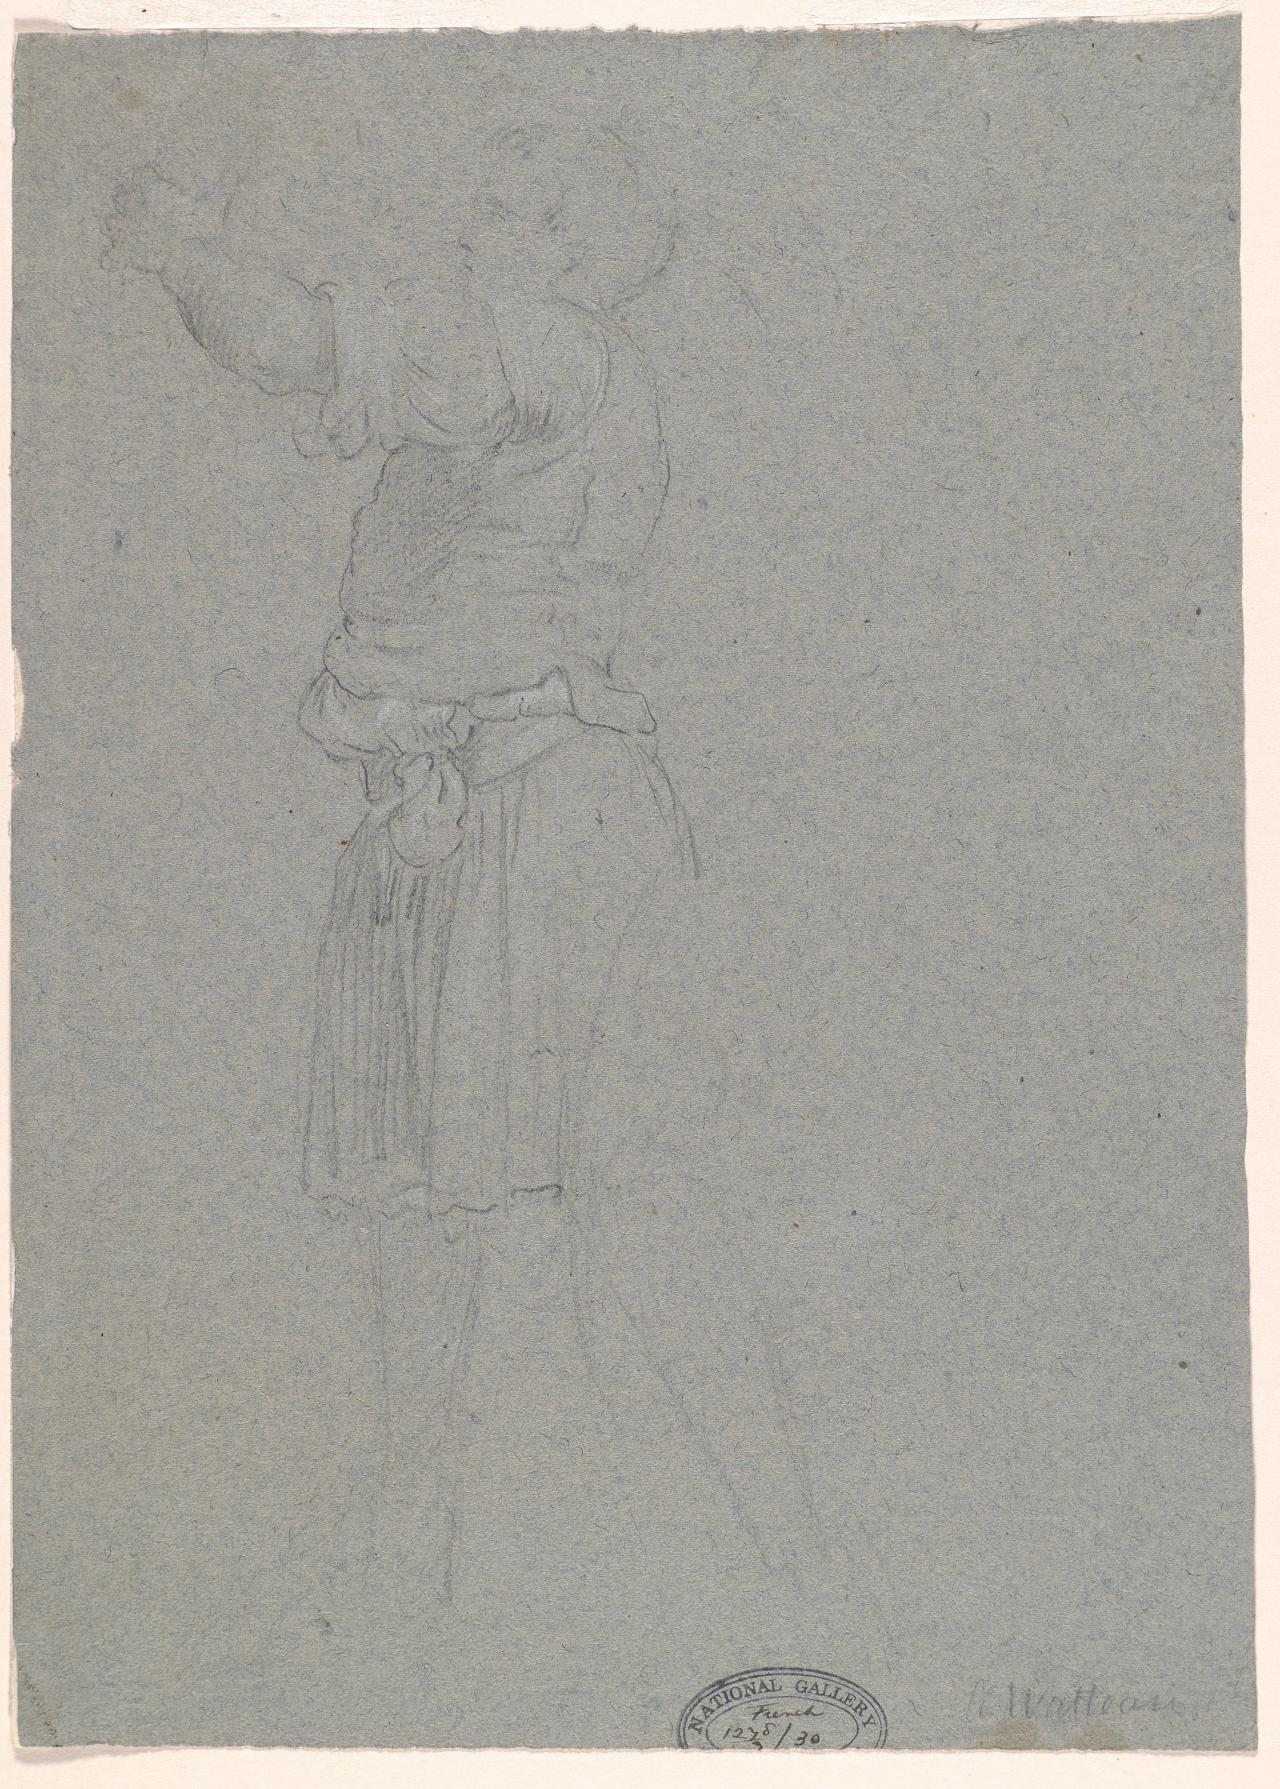 Sketch of a young man in tunic, reaching right